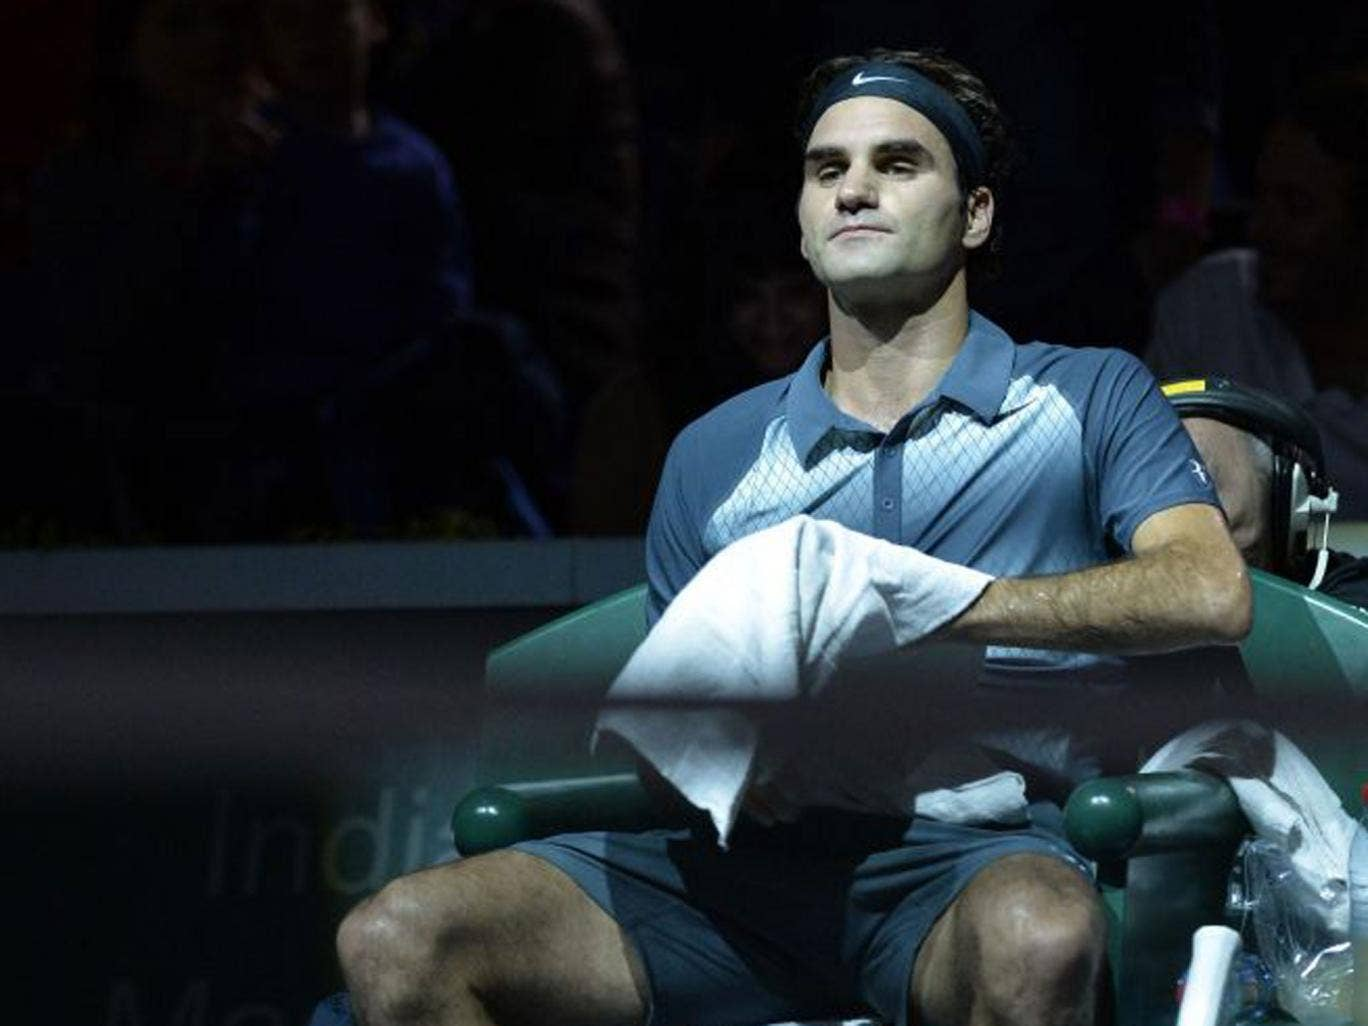 Roger Federer during his semi-final defeat by Novak Djokovic at the Paris Masters on Saturday